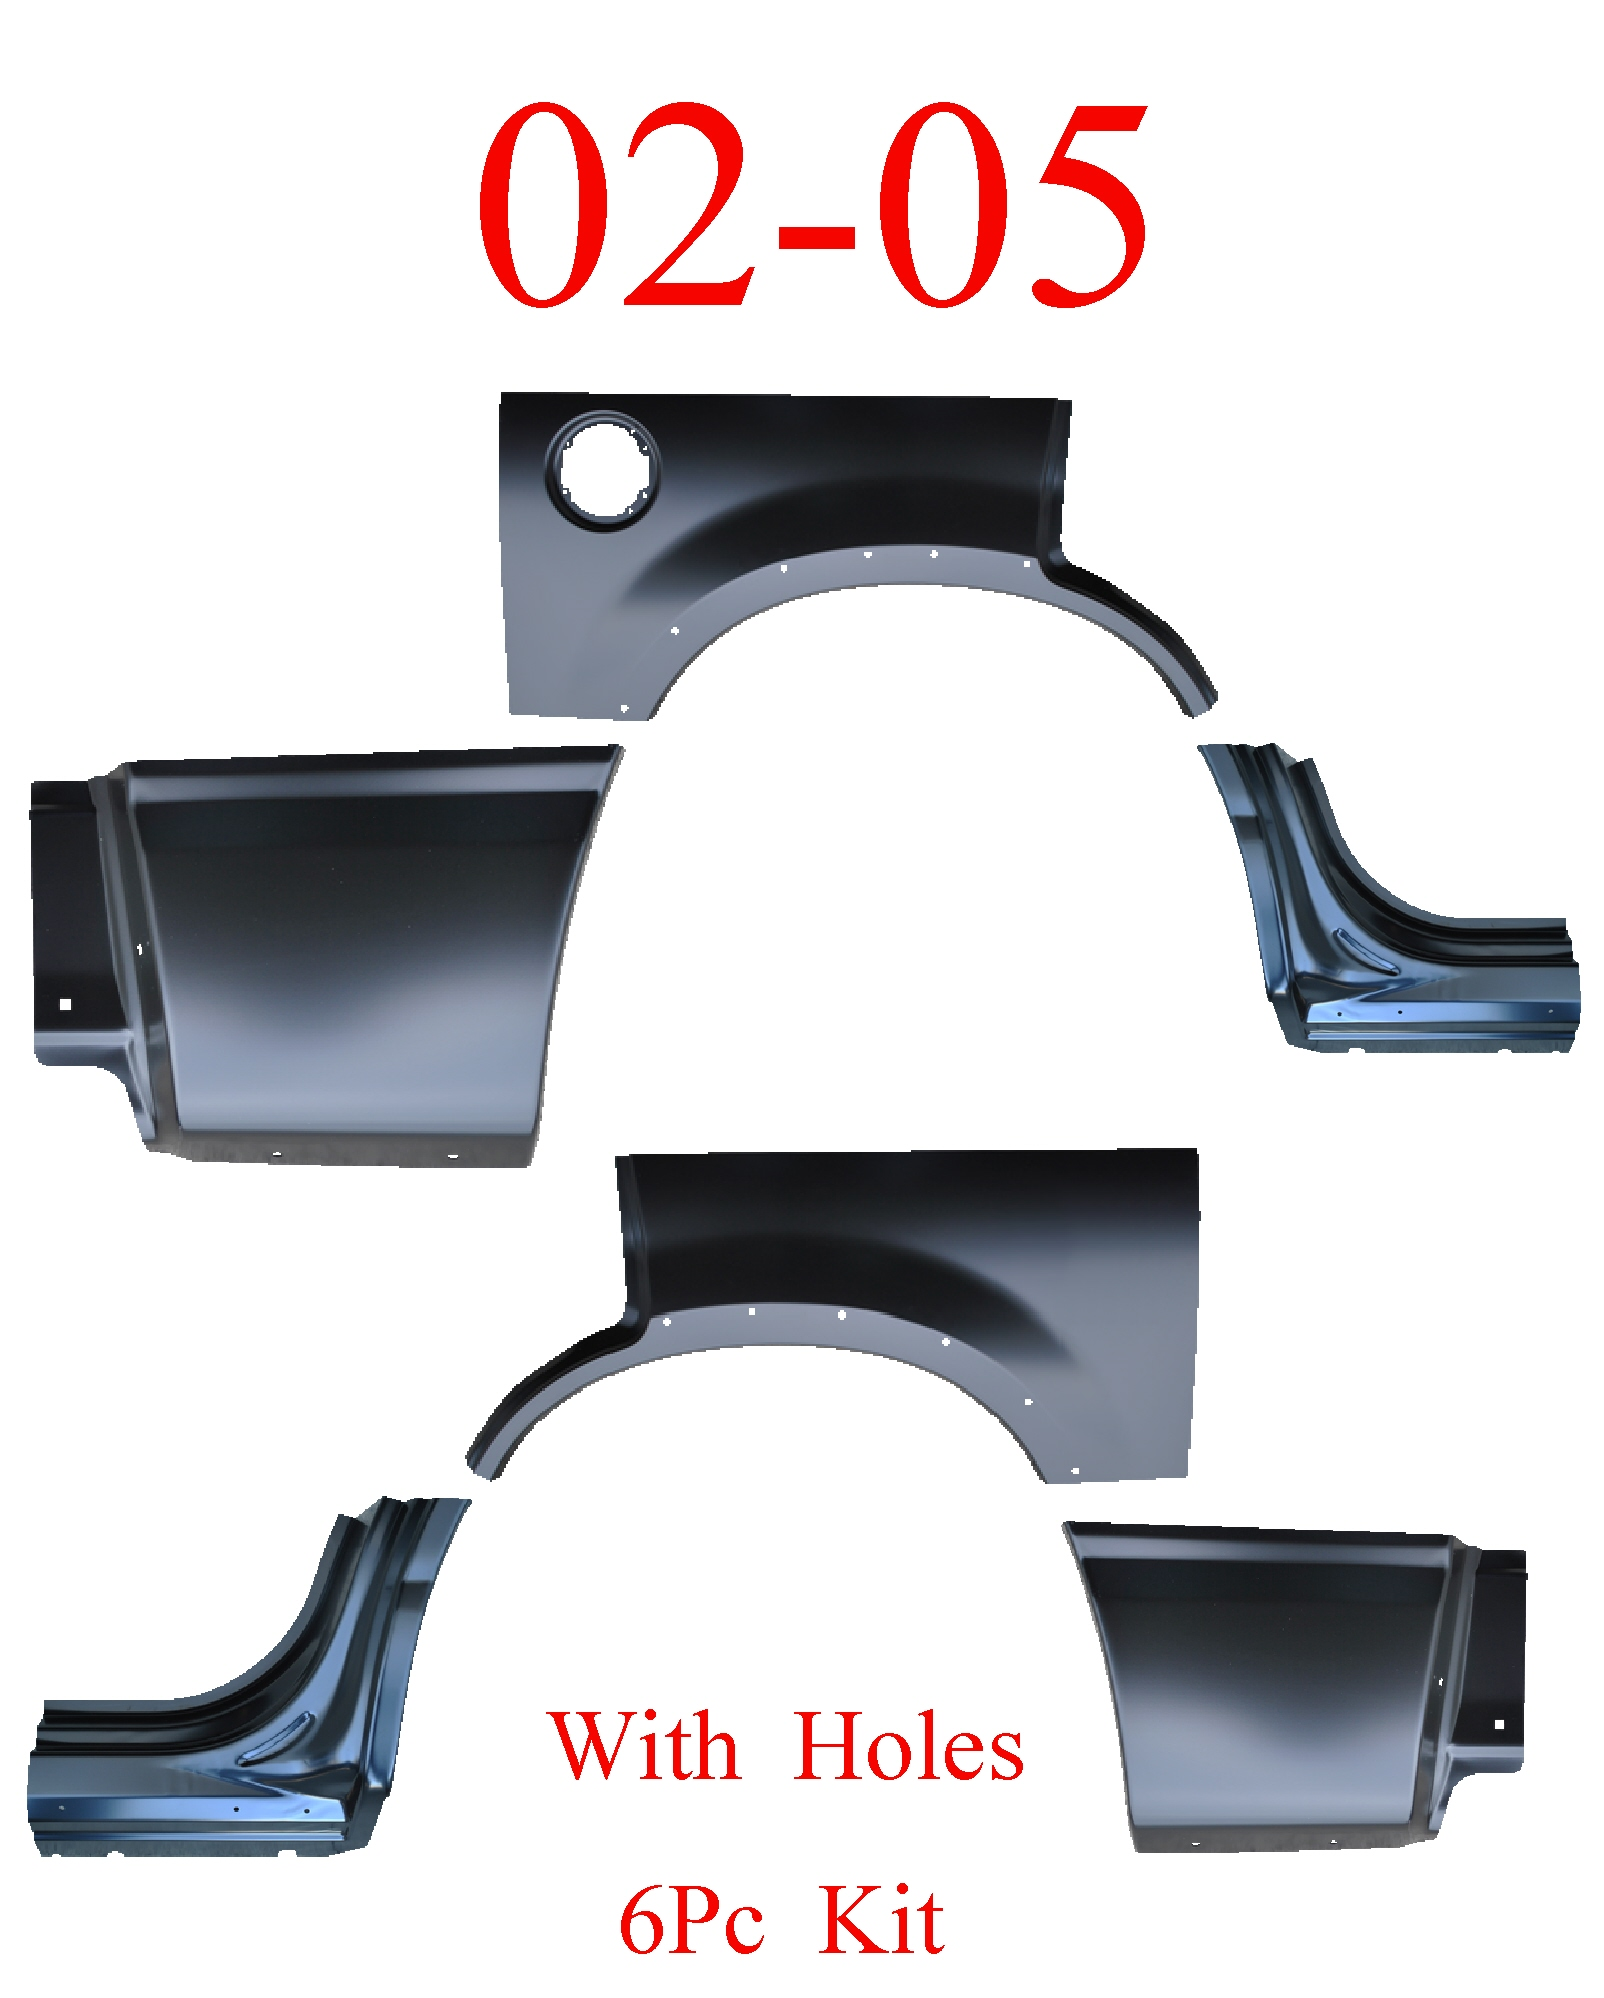 02-05 Explorer W/ Holes 6Pc Dog Leg, Arch & Lower Quarter Kit